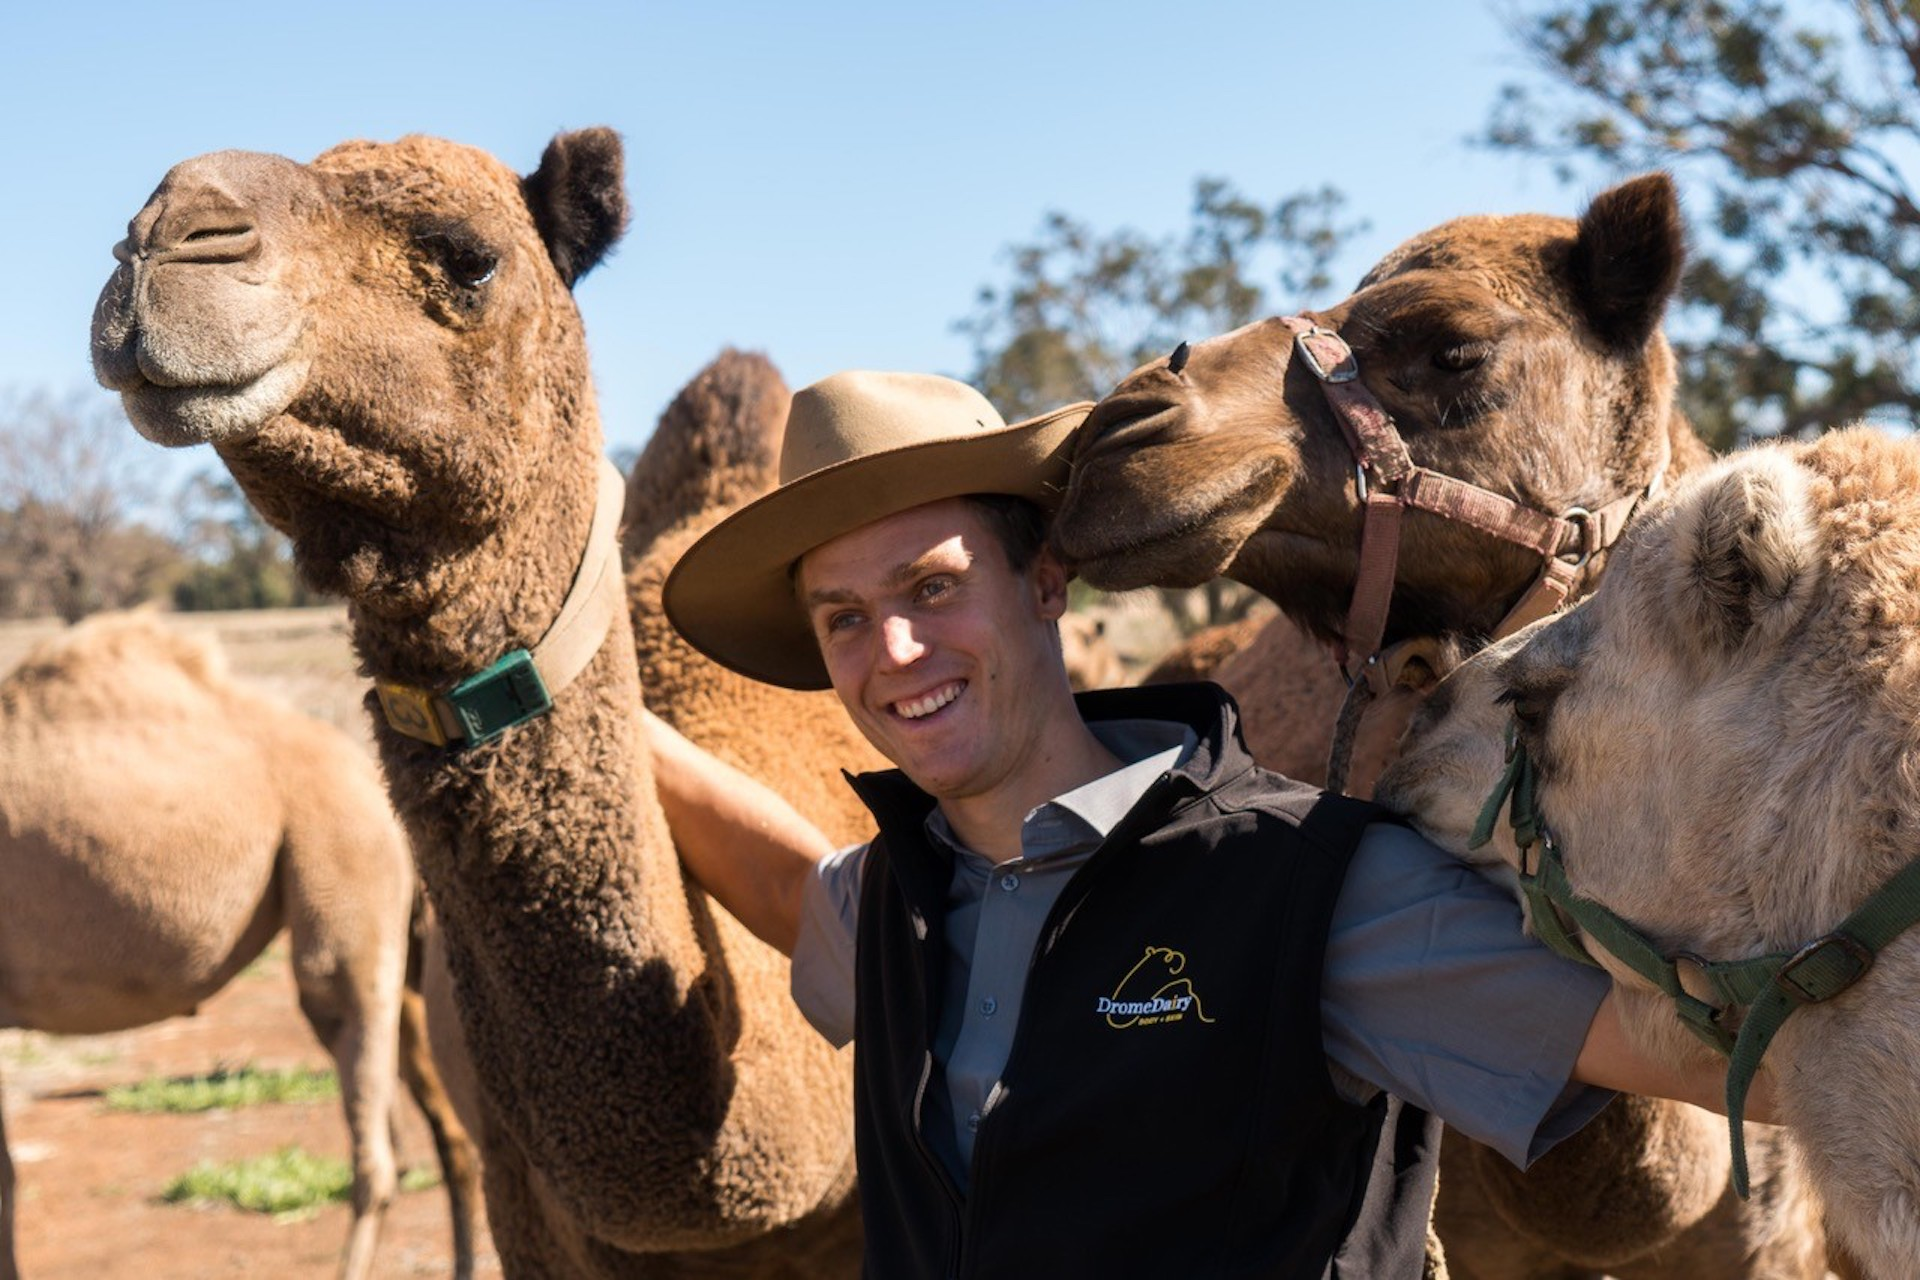 Max Bergmann pictured with camels